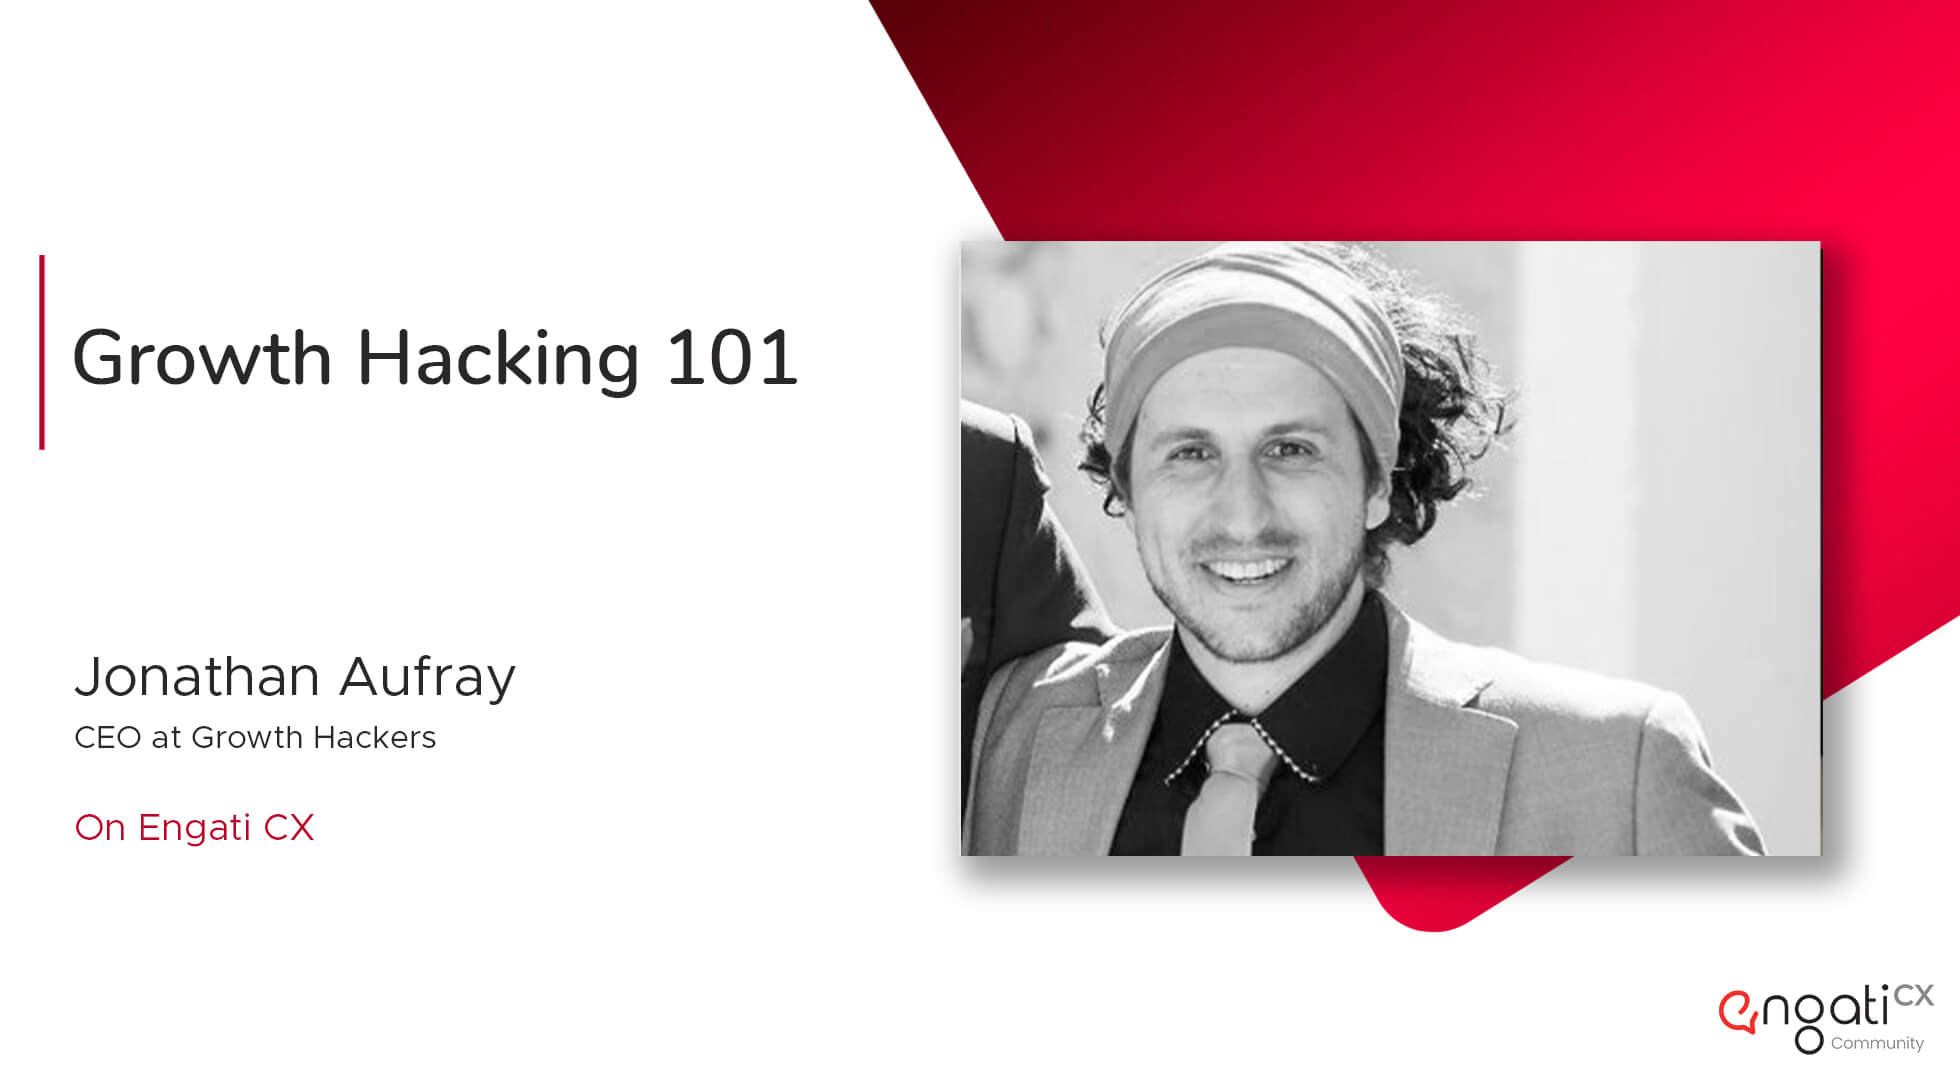 Growth hacking 101 | Jonathan Aufray | Engati CX